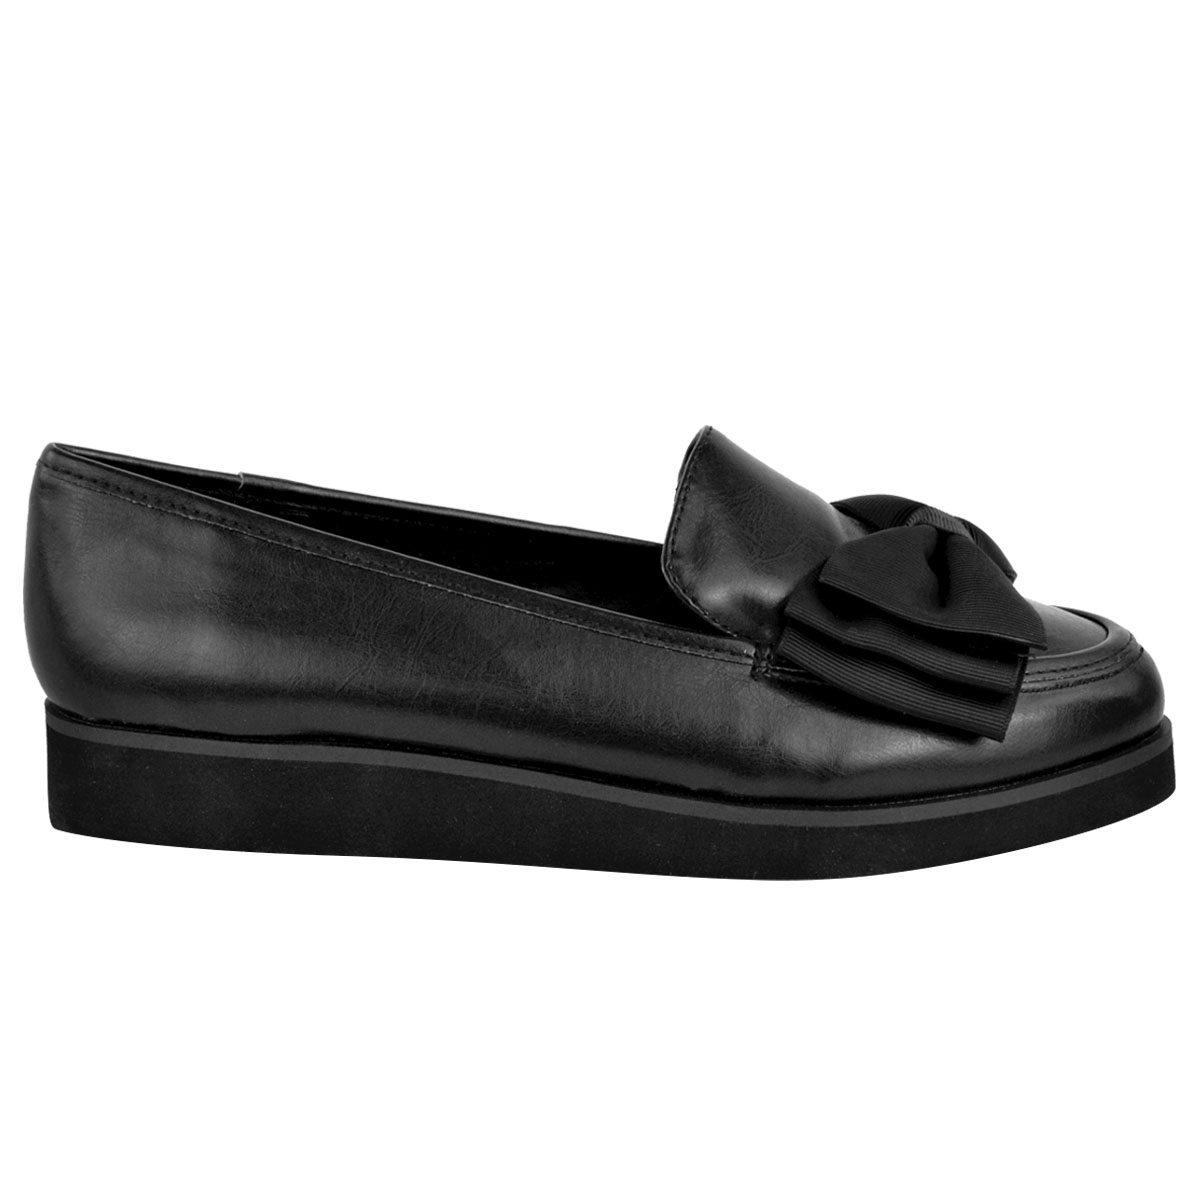 WOMENS-LADIES-GIRLS-NEW-FLAT-OFFICE-SCHOOL-SHOES-SMART-FORMAL-LOAFERS-PUMPS-SIZE thumbnail 3